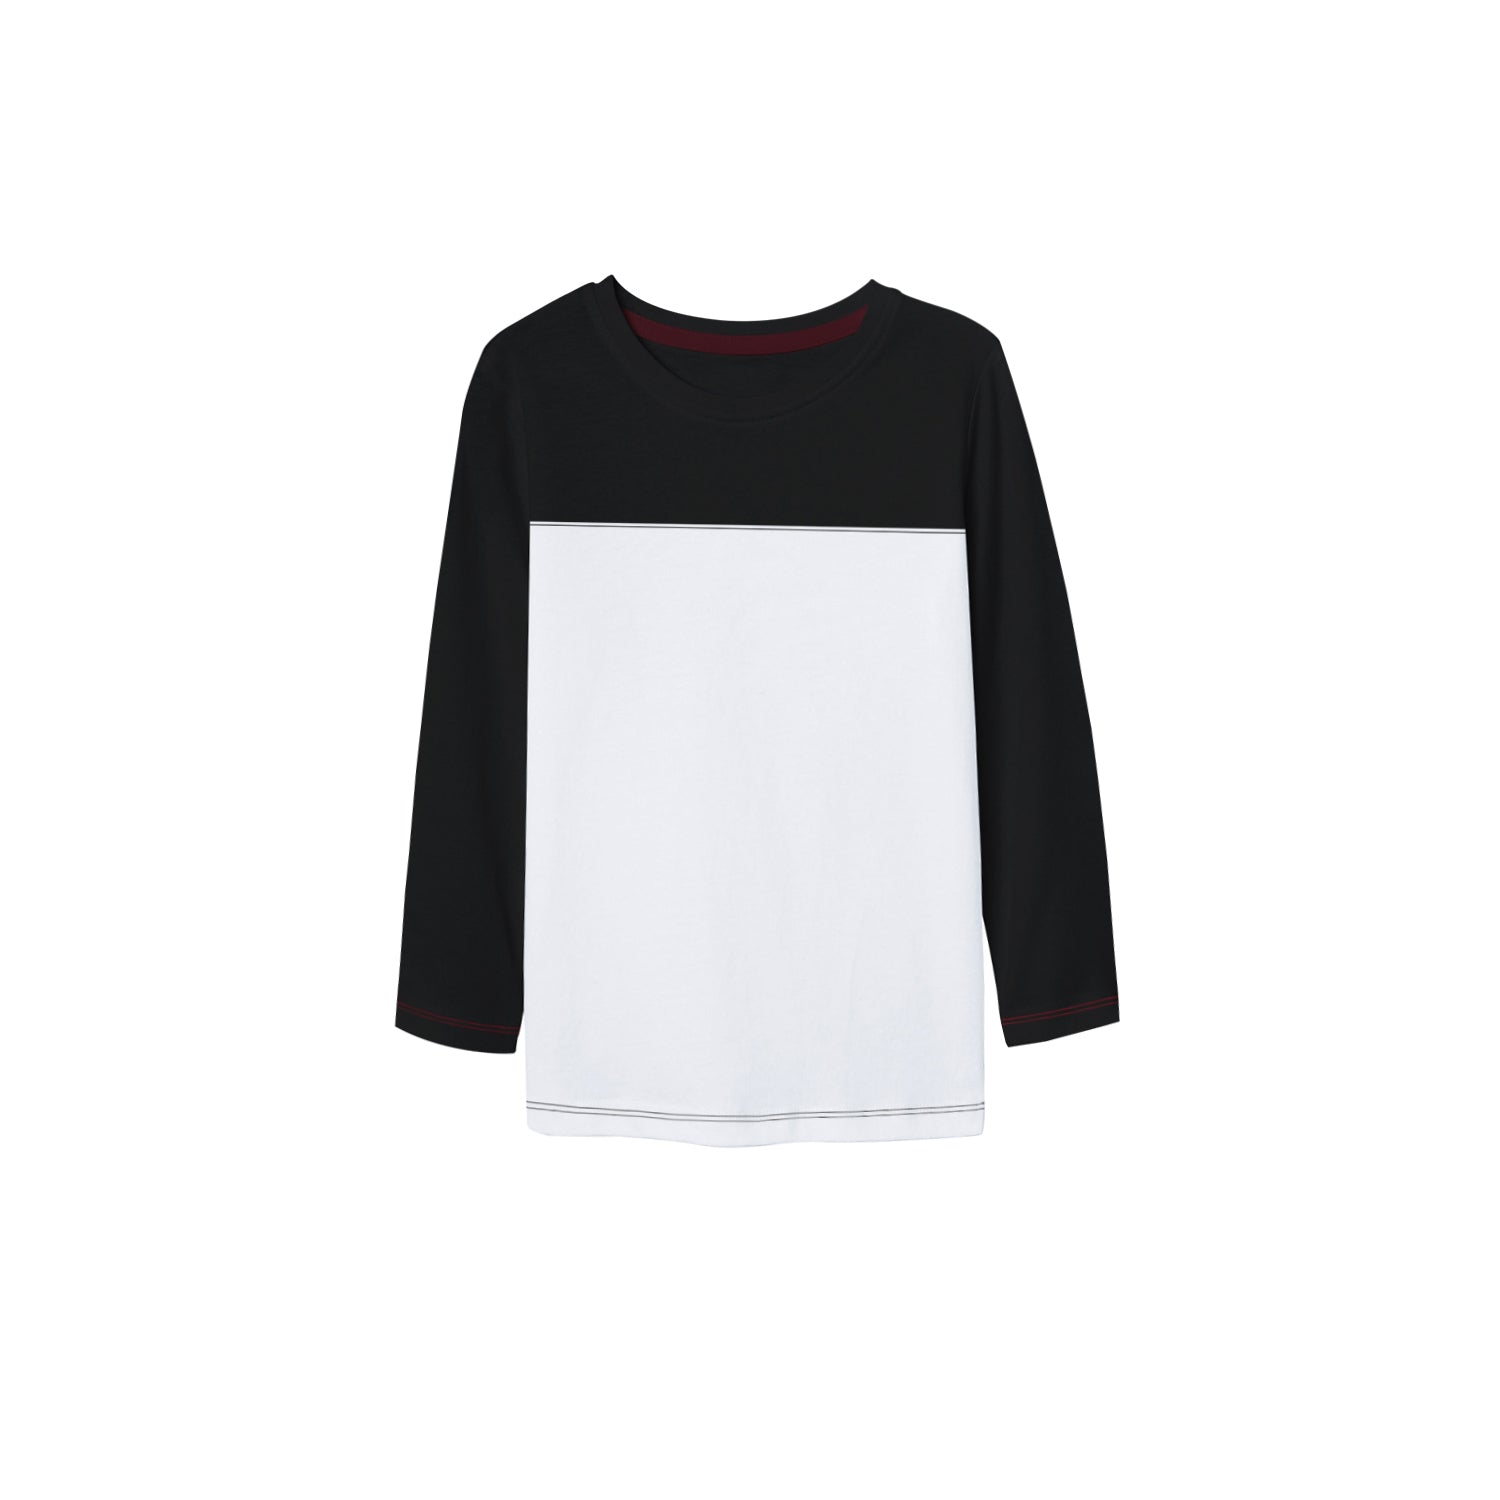 brandsego - NEXT Single Jersey Long Sleeve Tee Shirt For Kids-White & Black-BE9325